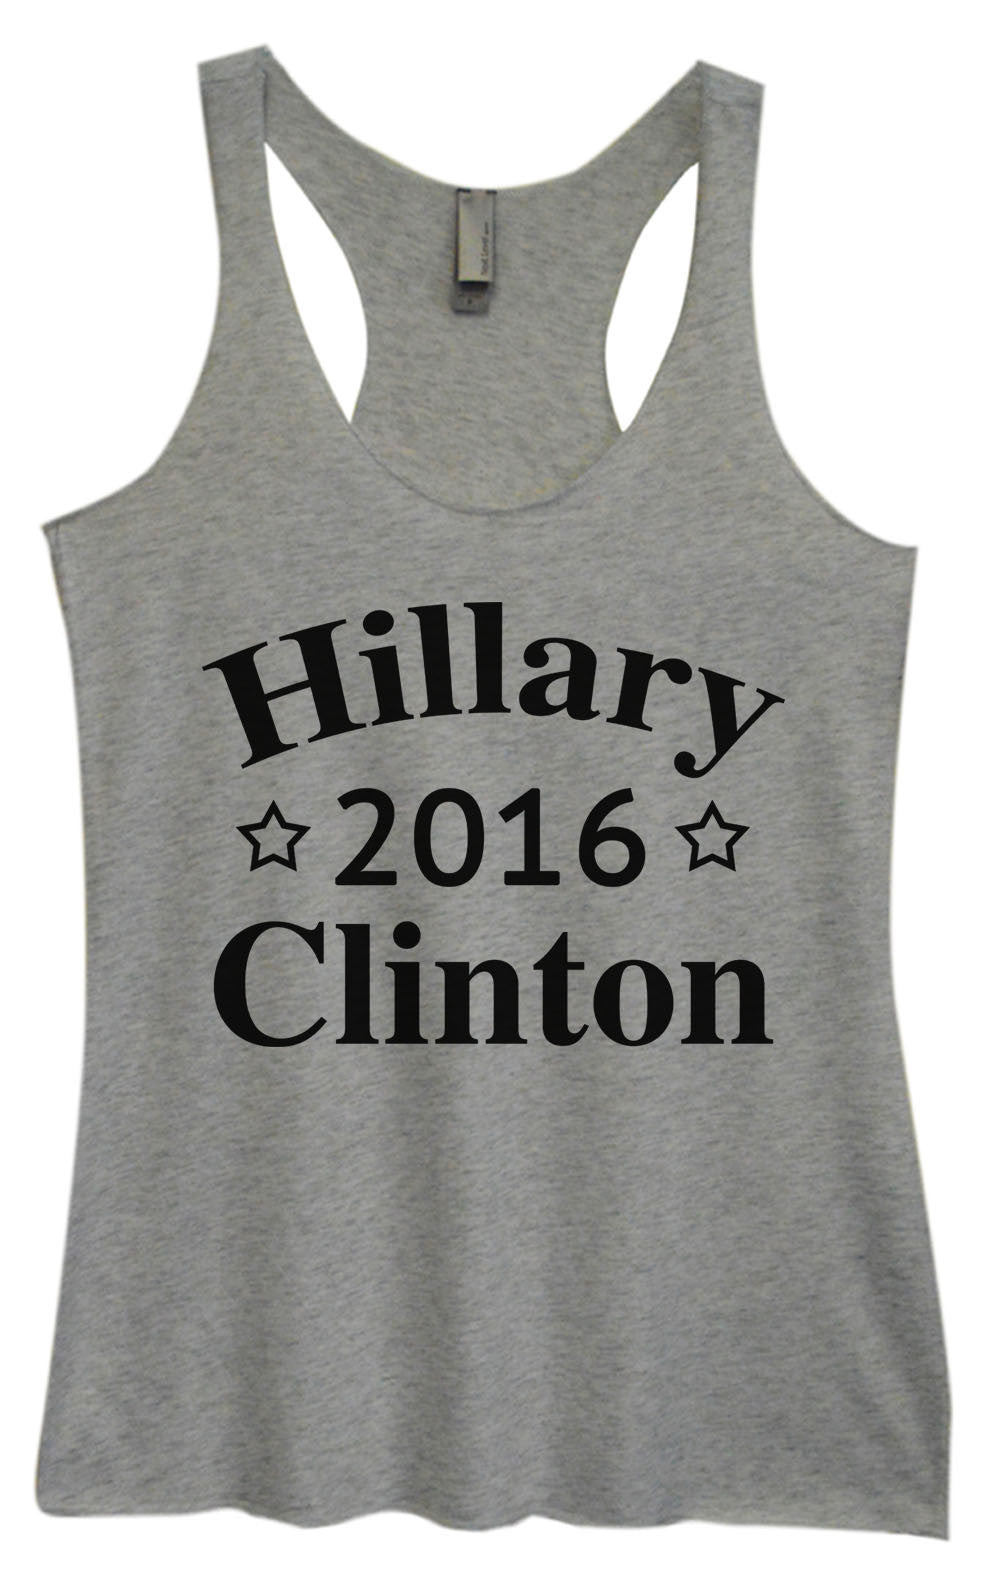 Womens Fashion Triblend Tank Top - Hillary 2016 Clinton - Tri-669 - Funny Shirts Tank Tops Burnouts and Triblends  - 2